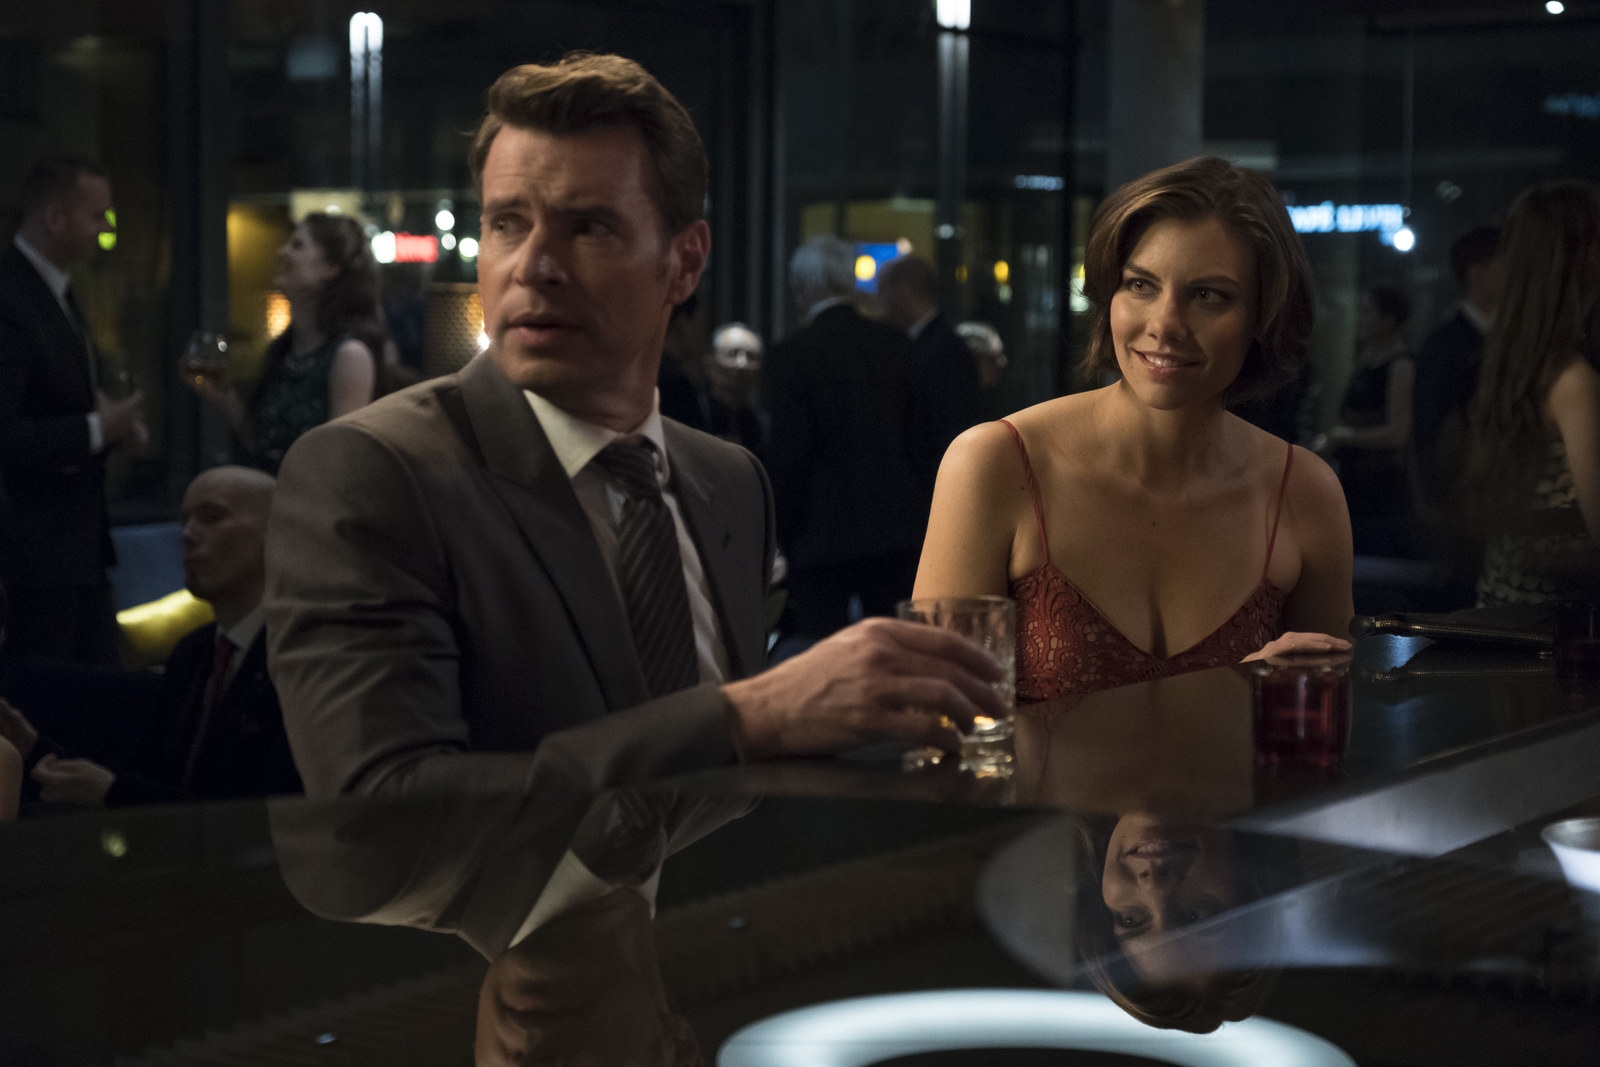 Scott Foley and Lauren Cohen's new series  Whiskey Cavalier  premiered this week. The show follows FBI agent Will Chase who is assigned to work with CIA operative Frankie Trowbridge on a cross-agency task force.